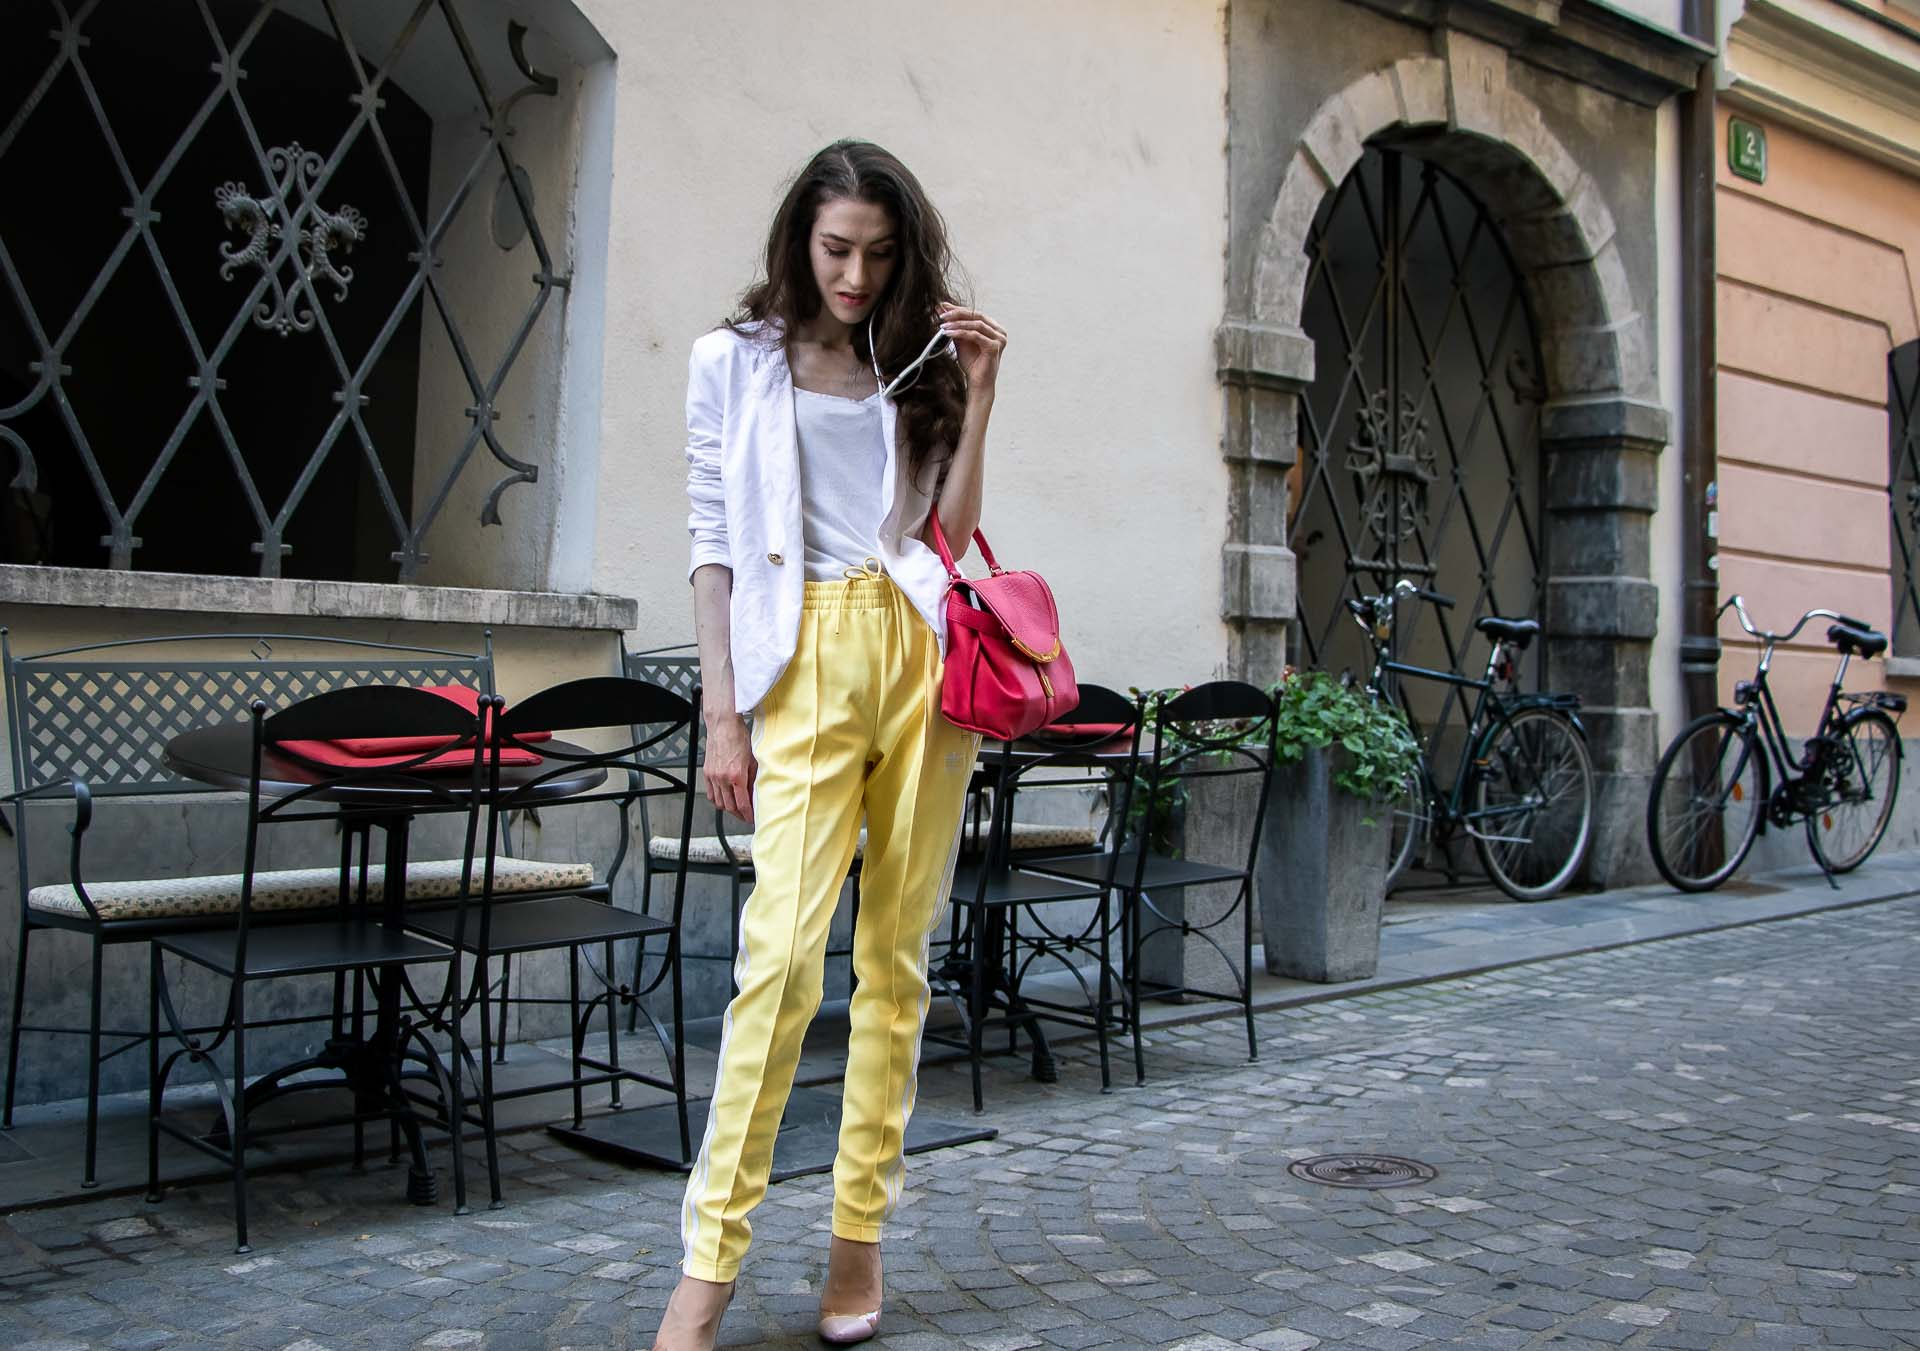 Veronika Lipar Fashion Editor of Brunette from Wall Street wearing chic casual white blazer, white H&M t-shirt, yellow Addidas track pants, See by Chloé pink top handle bag, Adam Selman x Le Specs white cat eye Lolita sunglasses, pink blush Gianvito Rossi plexi pumps on the street